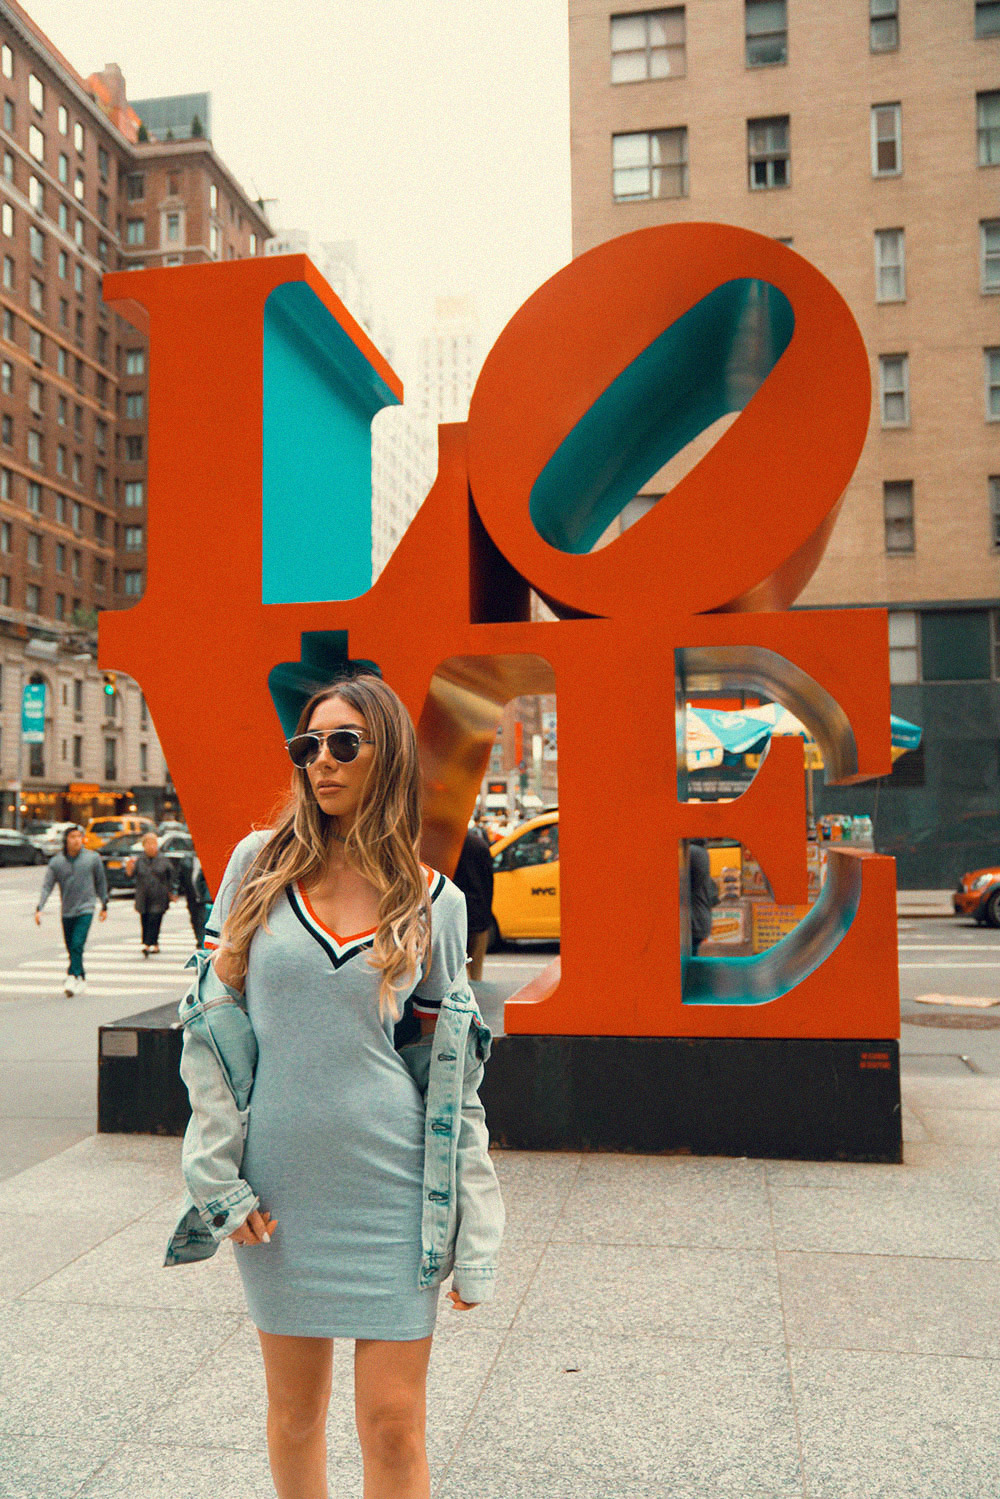 Love Sculpture in New York City. Summer 2017